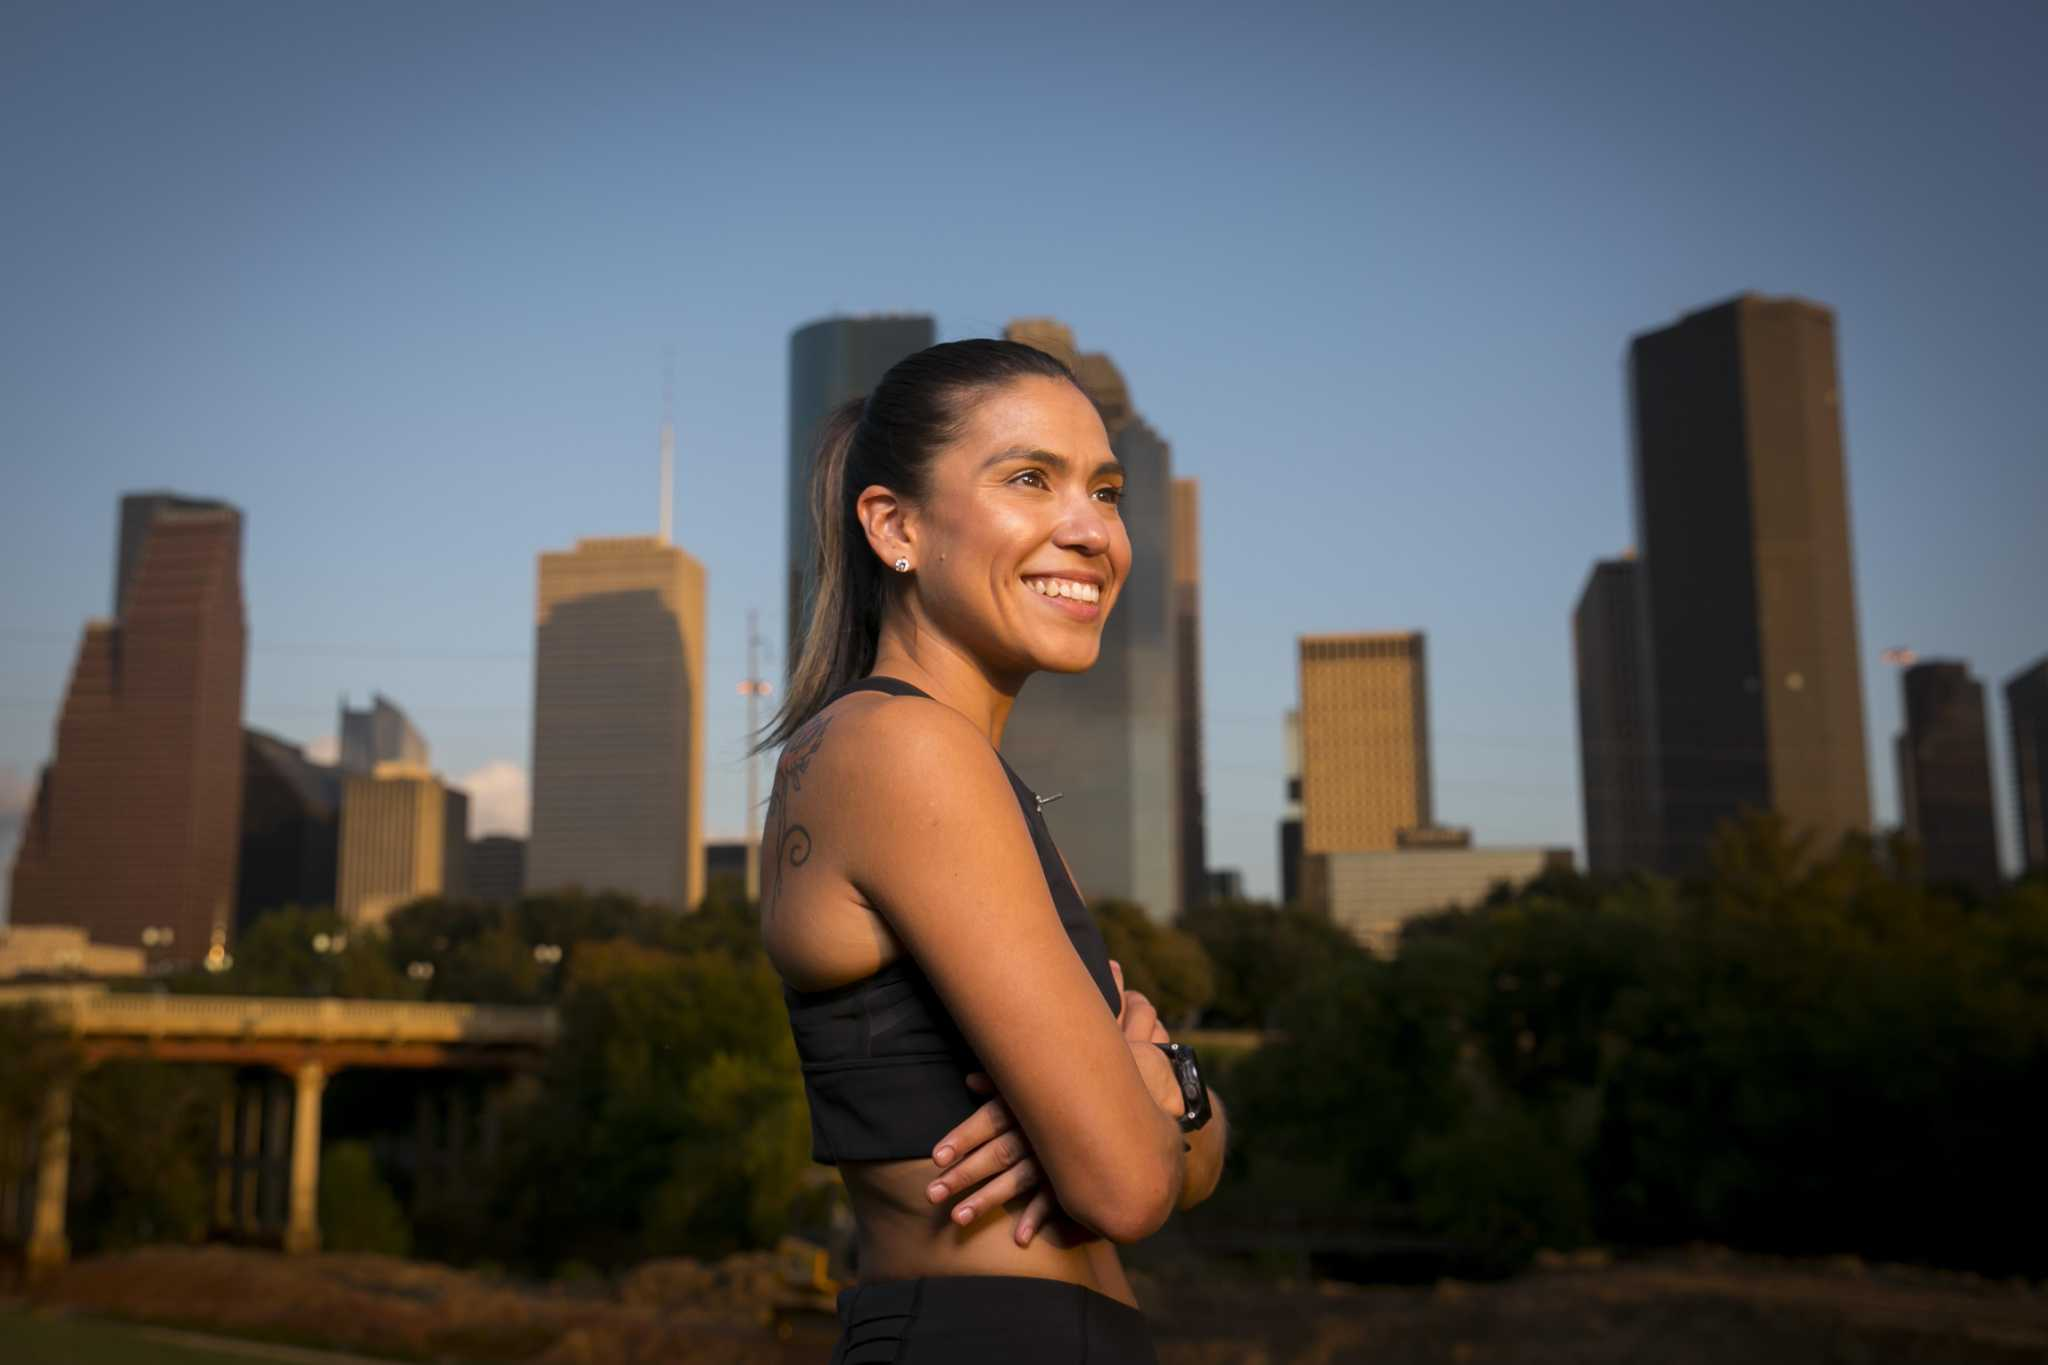 After years of an eating disorder, former University of Houston runner aims for Olympic trials